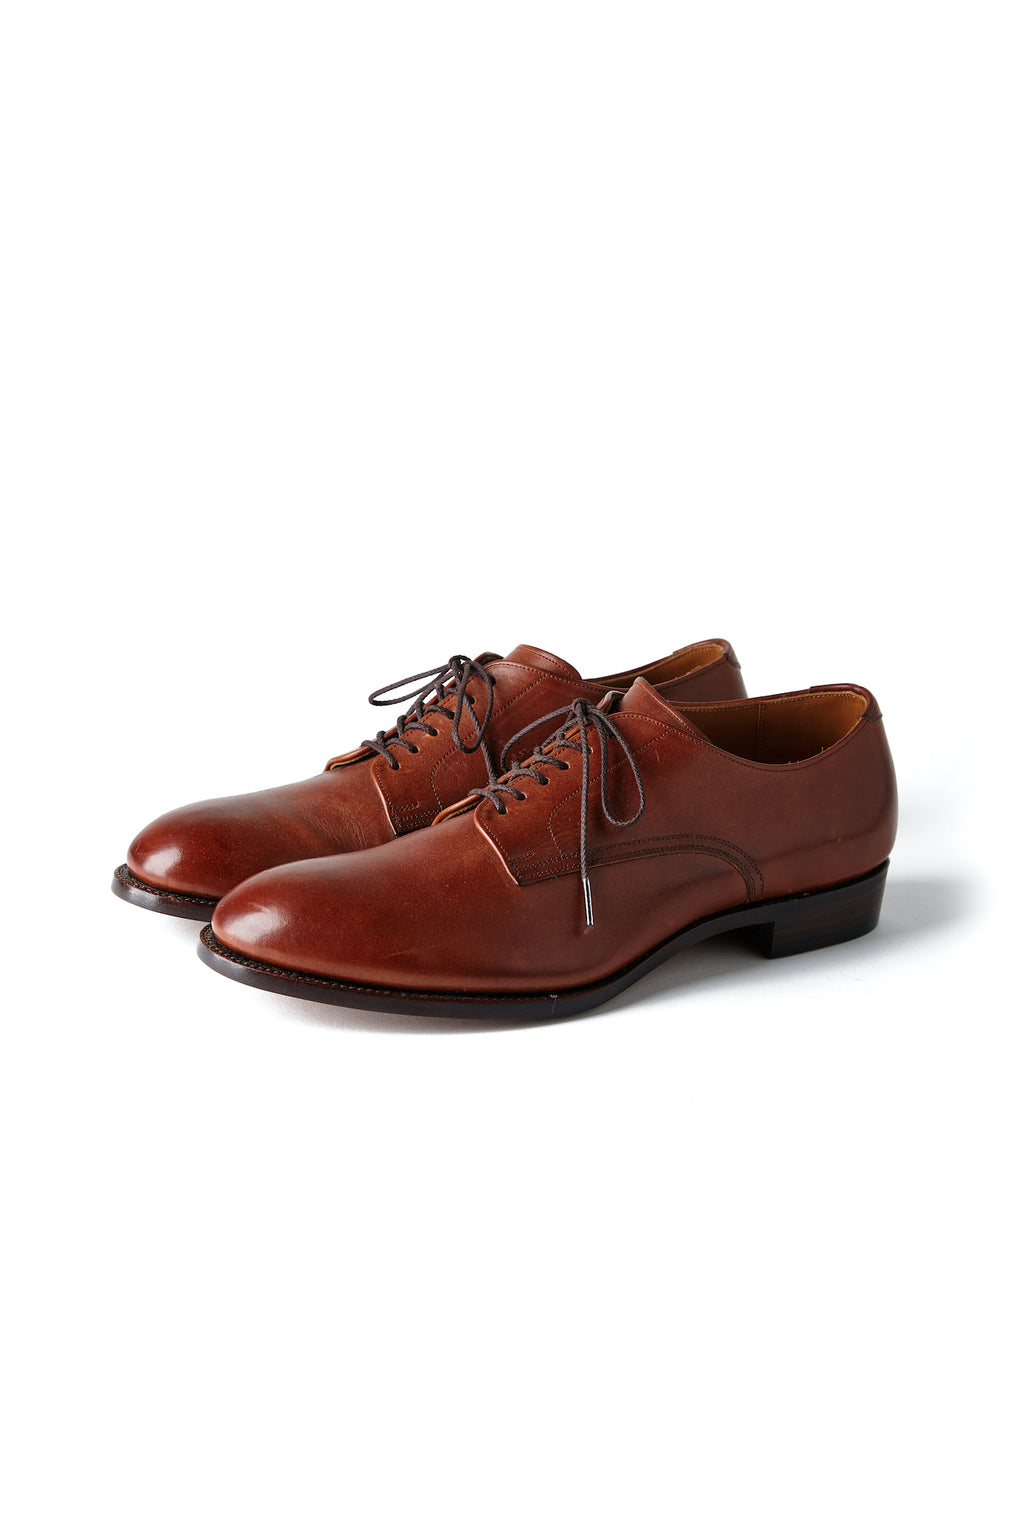 """The Officer""  STUNNING LEATHER OXFORD SHOES - 201OJ-FW02"